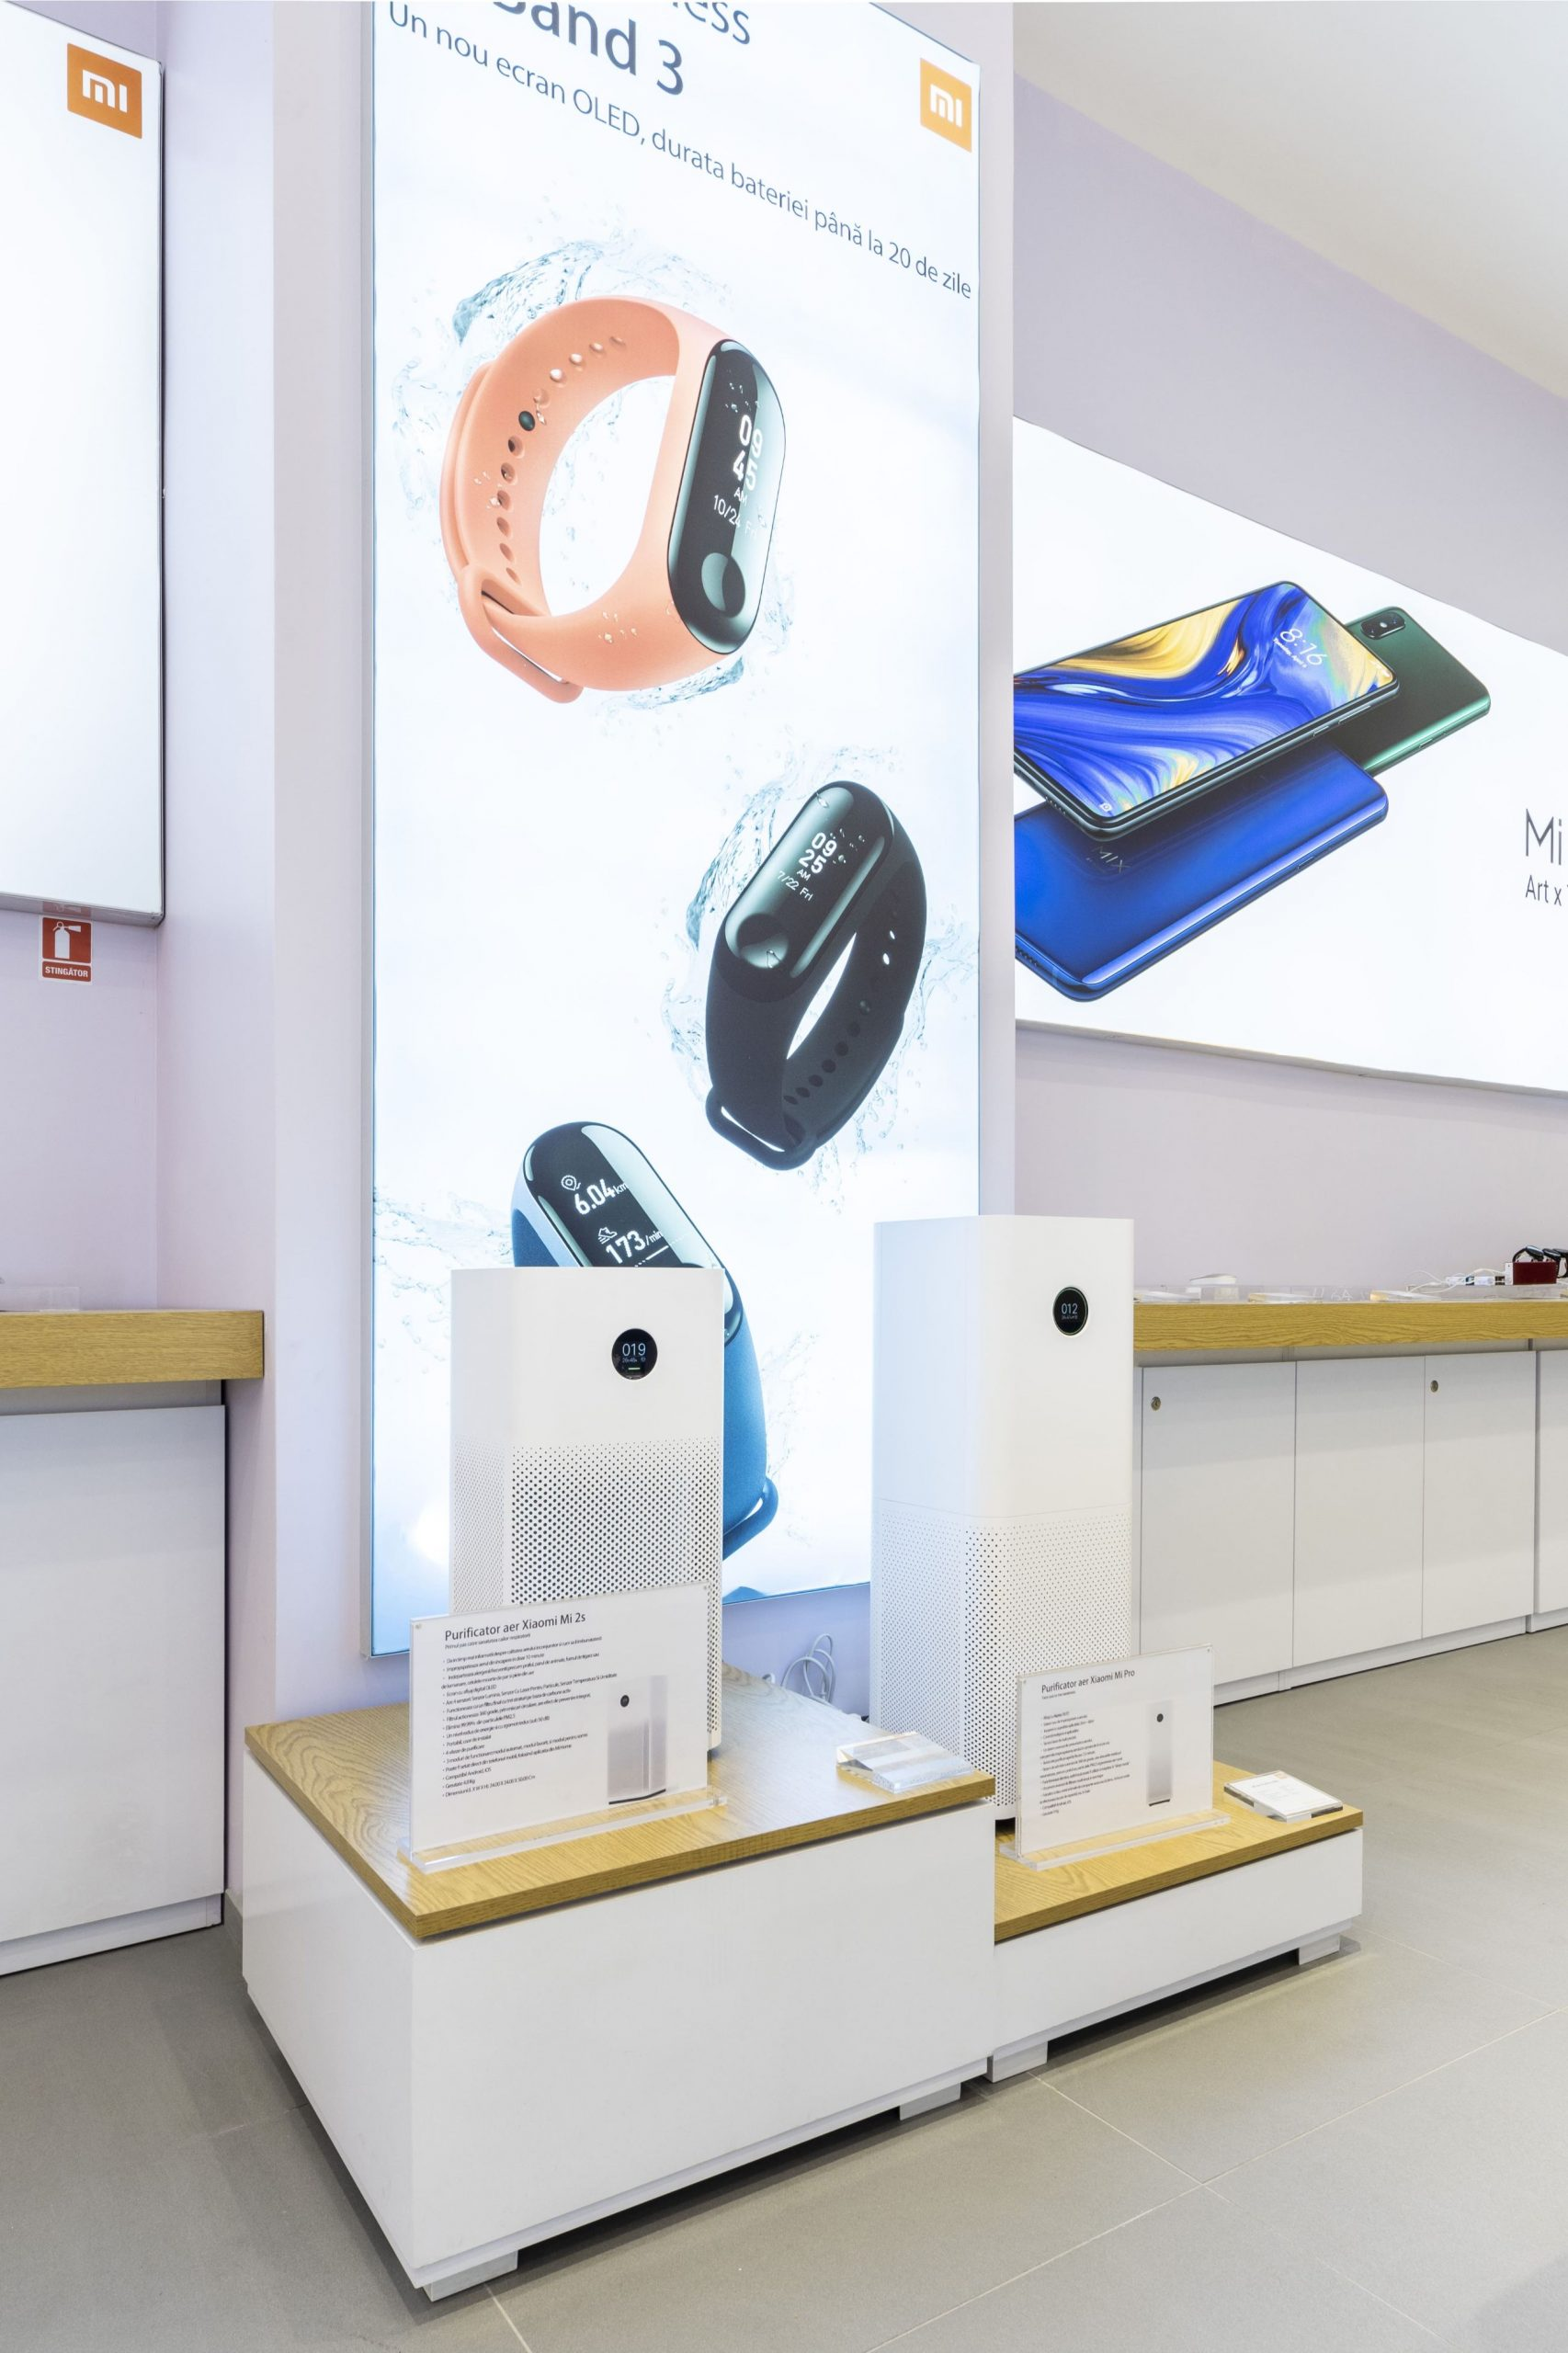 Xiaomi Store: Originality of Constrains